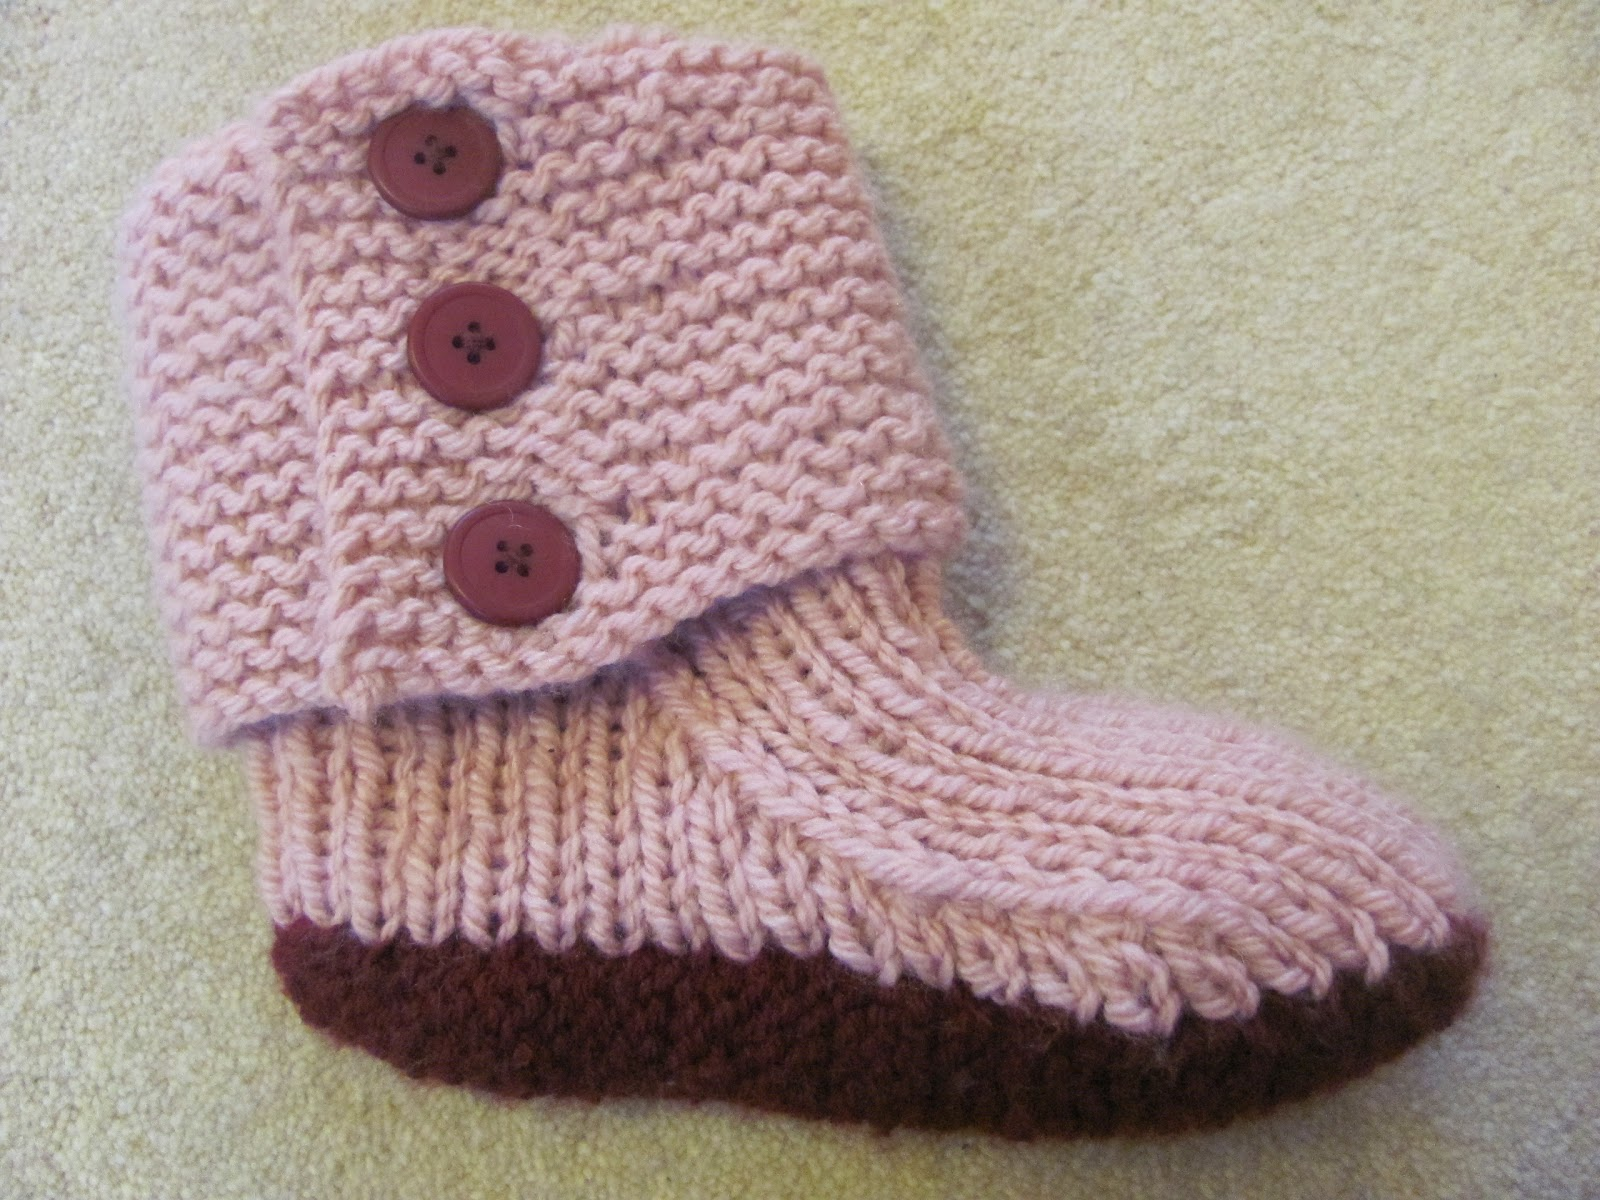 Knitting Pictures Free : Baby slipper knitting pattern free